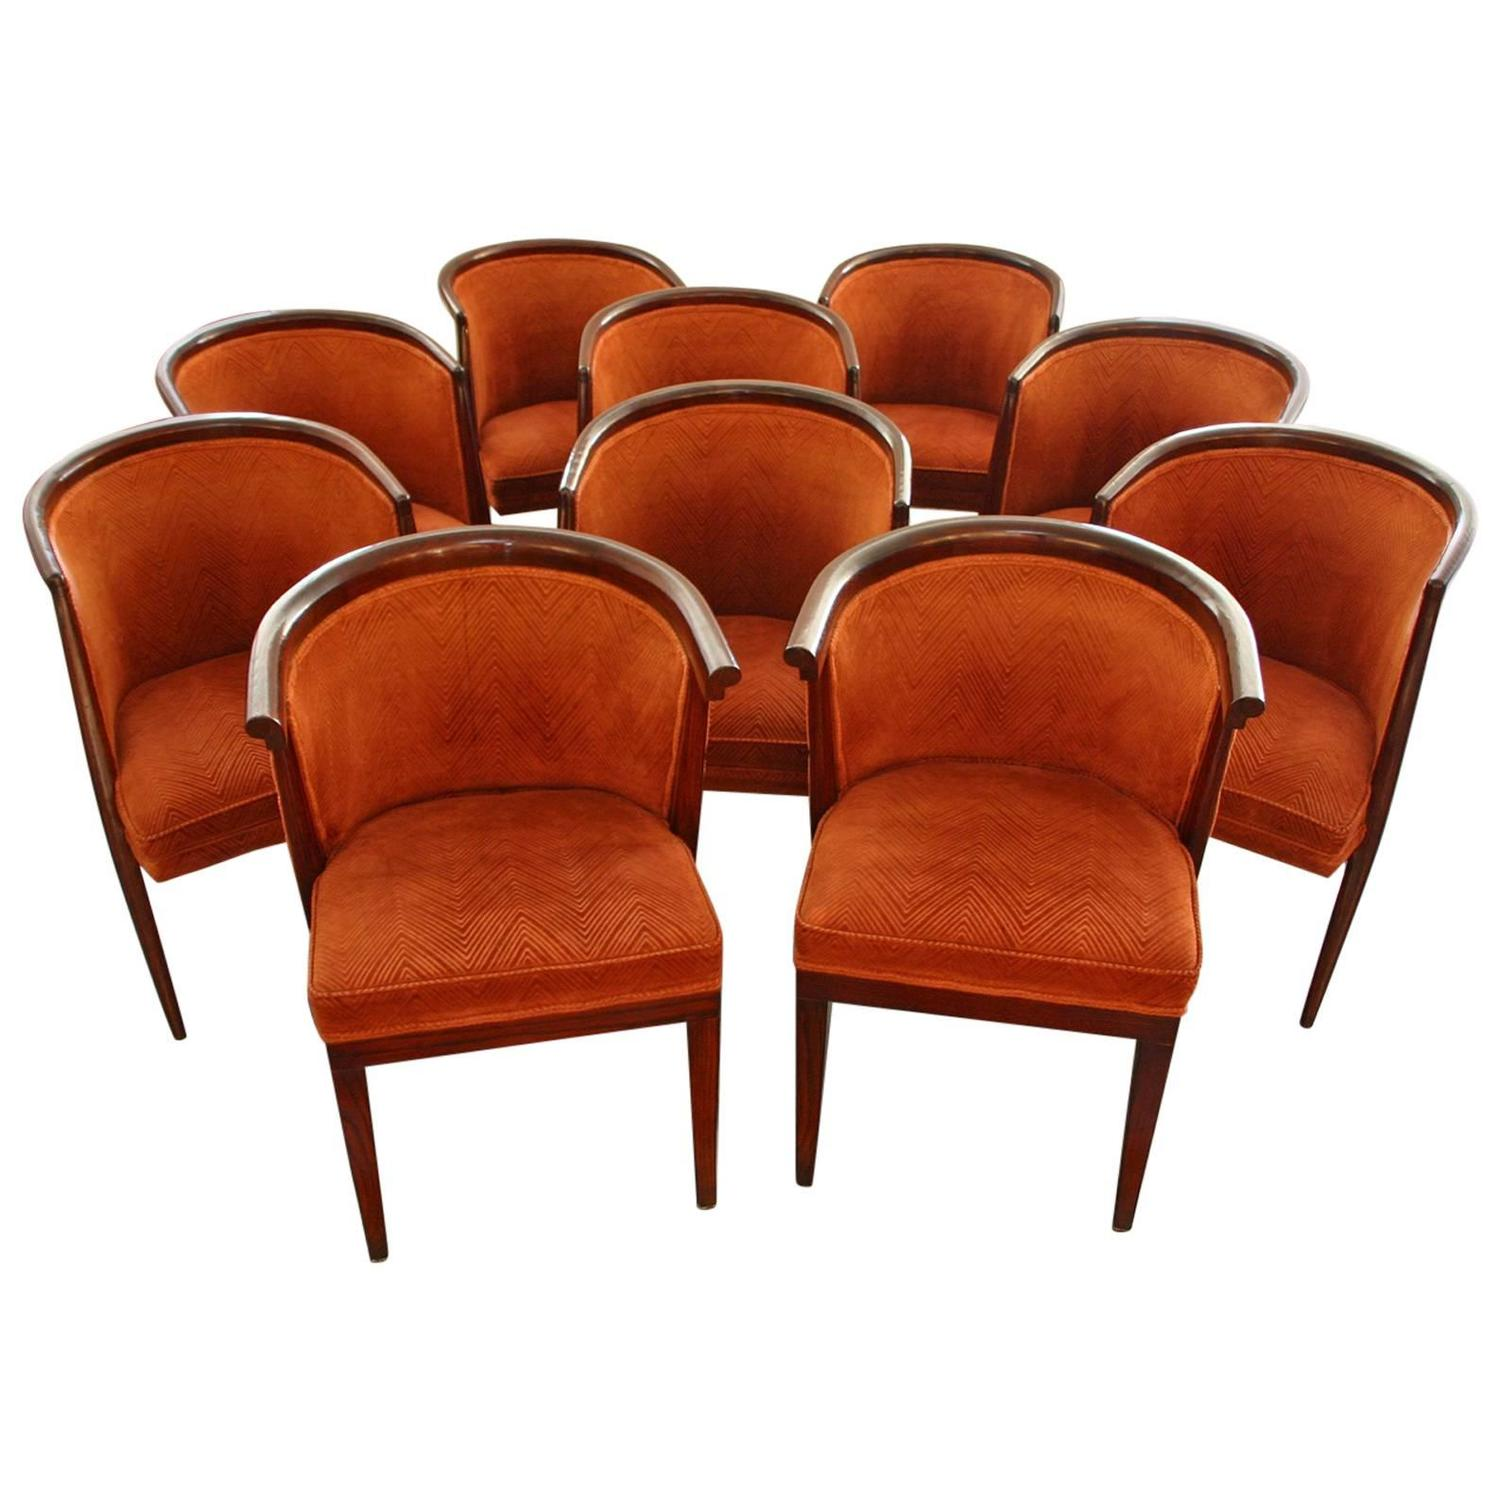 schwartz mid century tub shaped dining chairs for sale at 1stdibs